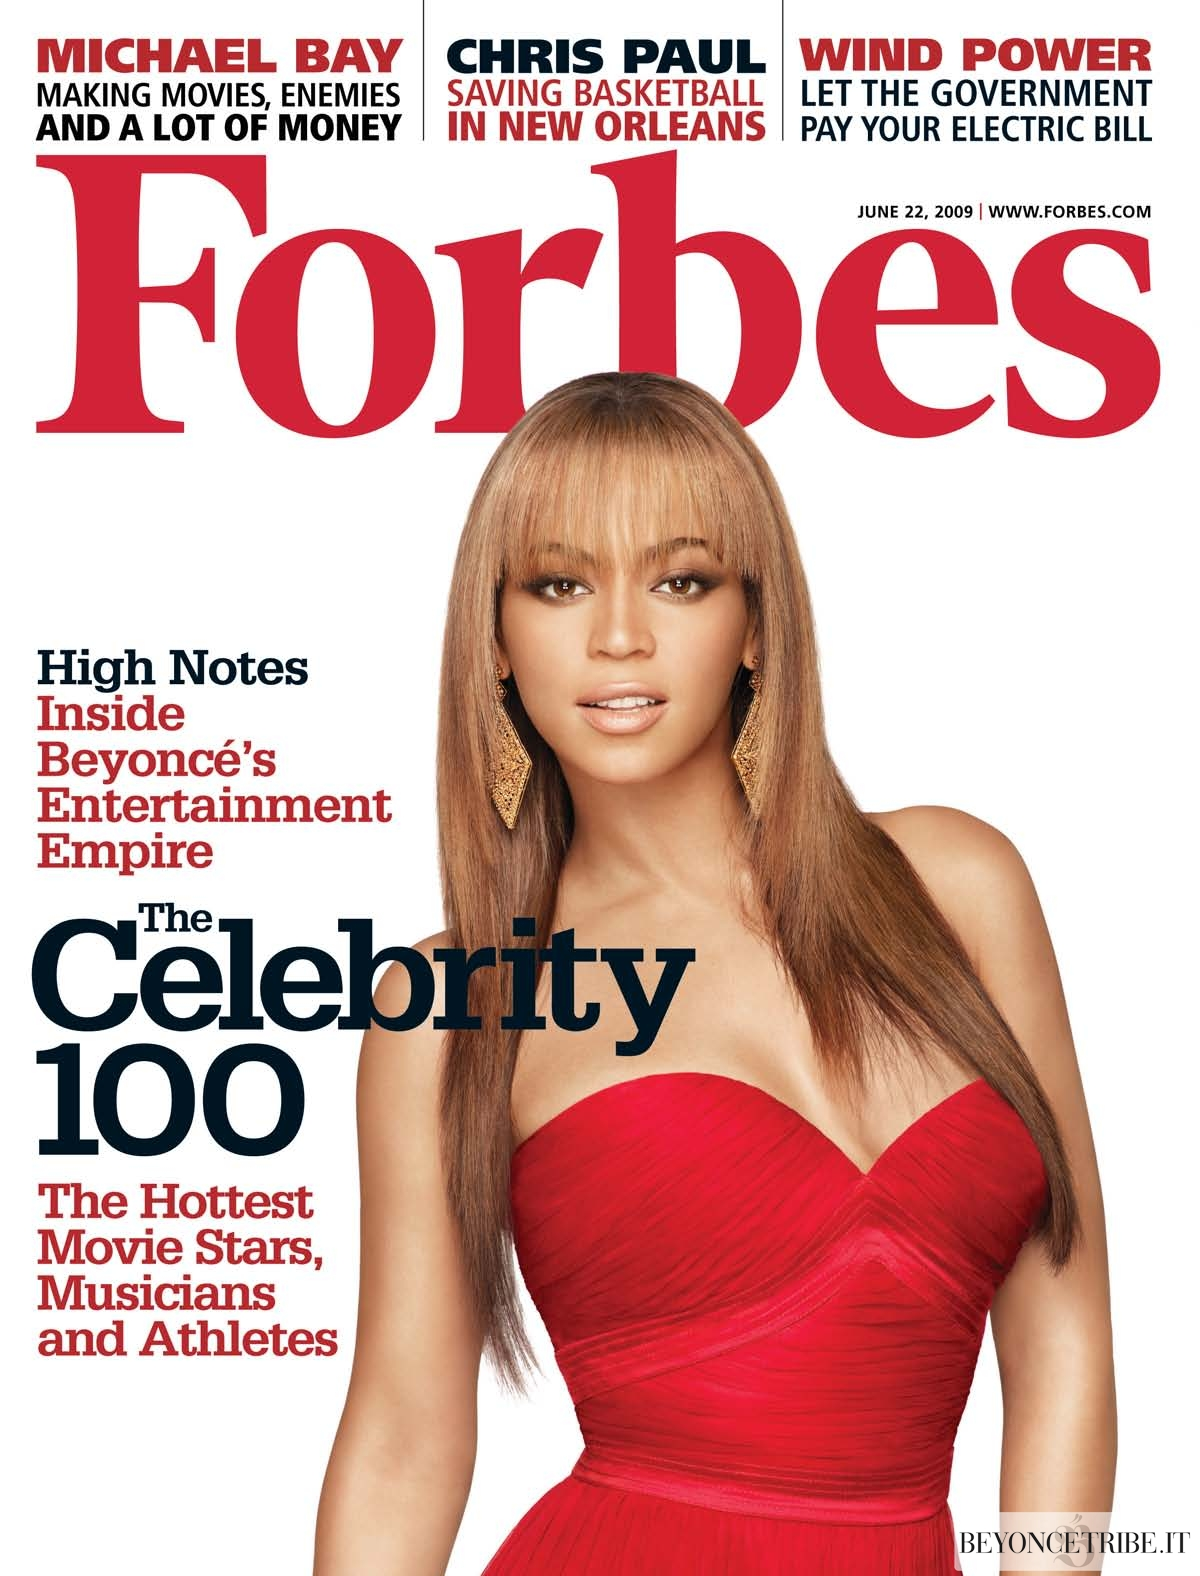 http://www.beyoncetribe.it/gallery/wp-content/uploads/2013/11/Beyonc%C3%A9-on-the-cover-of-Forbes-magazine-jun-2009.jpg